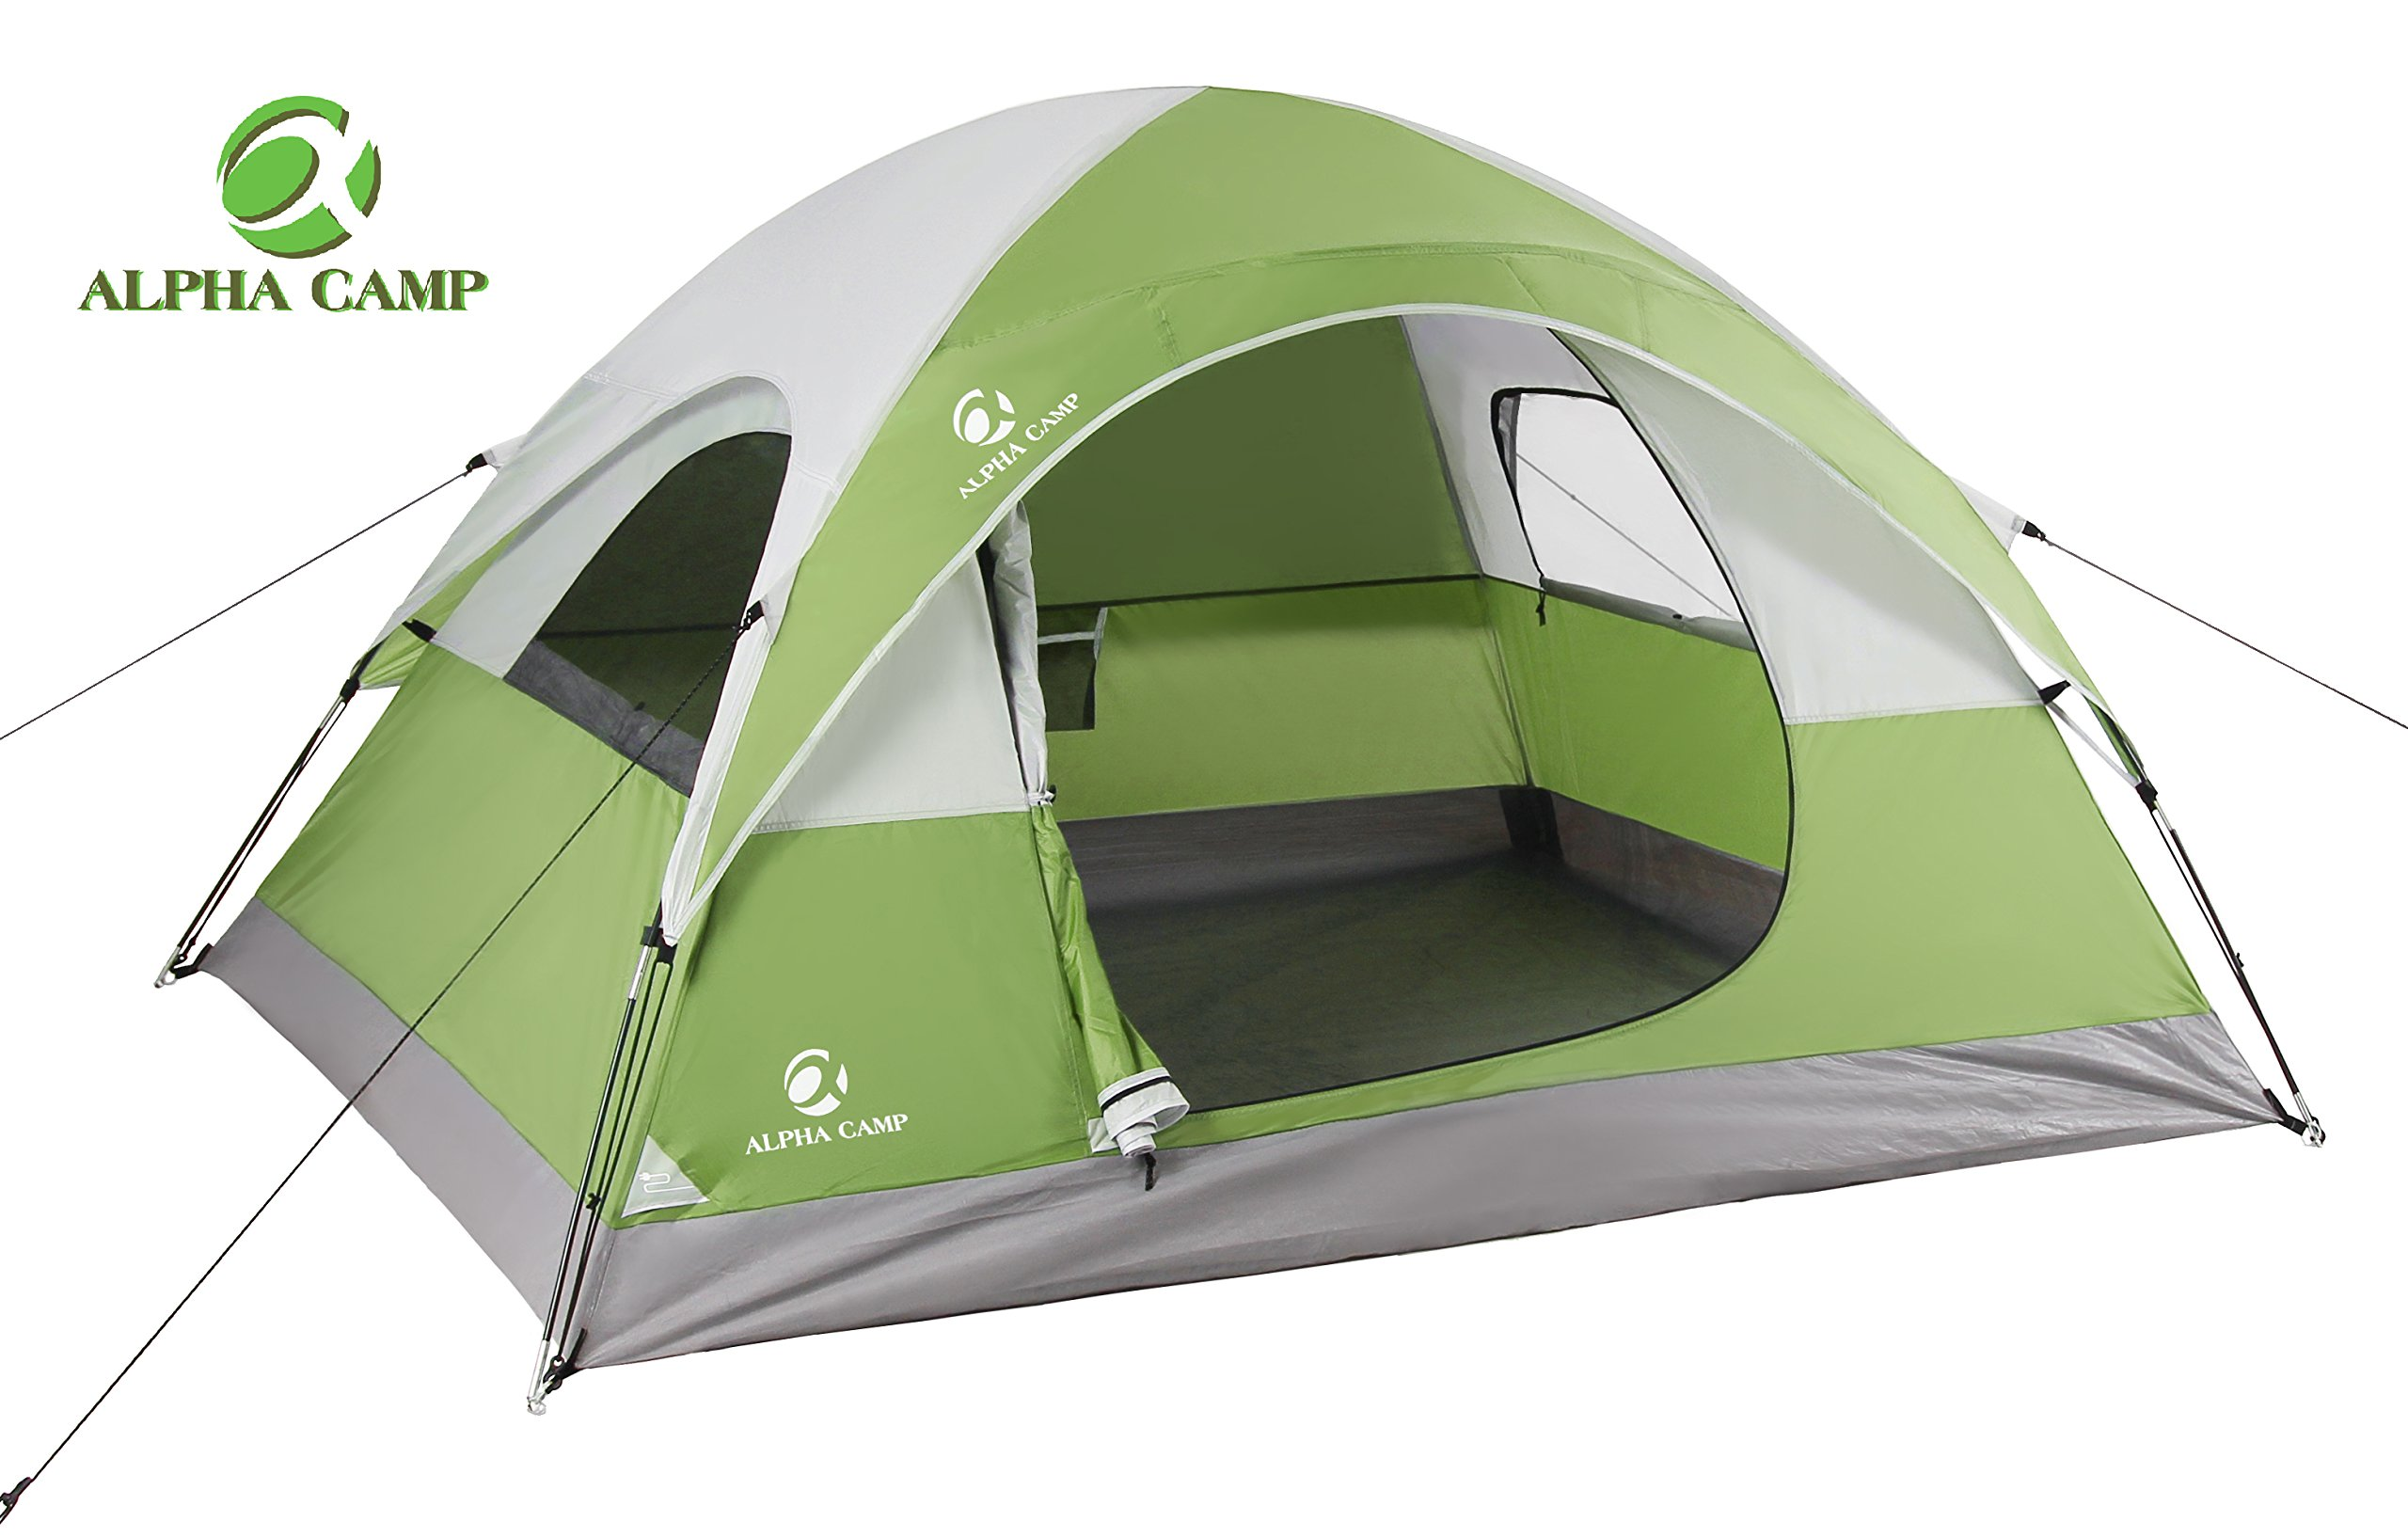 ALPHA CAMP 3 Person Camping Tent - 7' x 8' Green by ALPHA CAMP